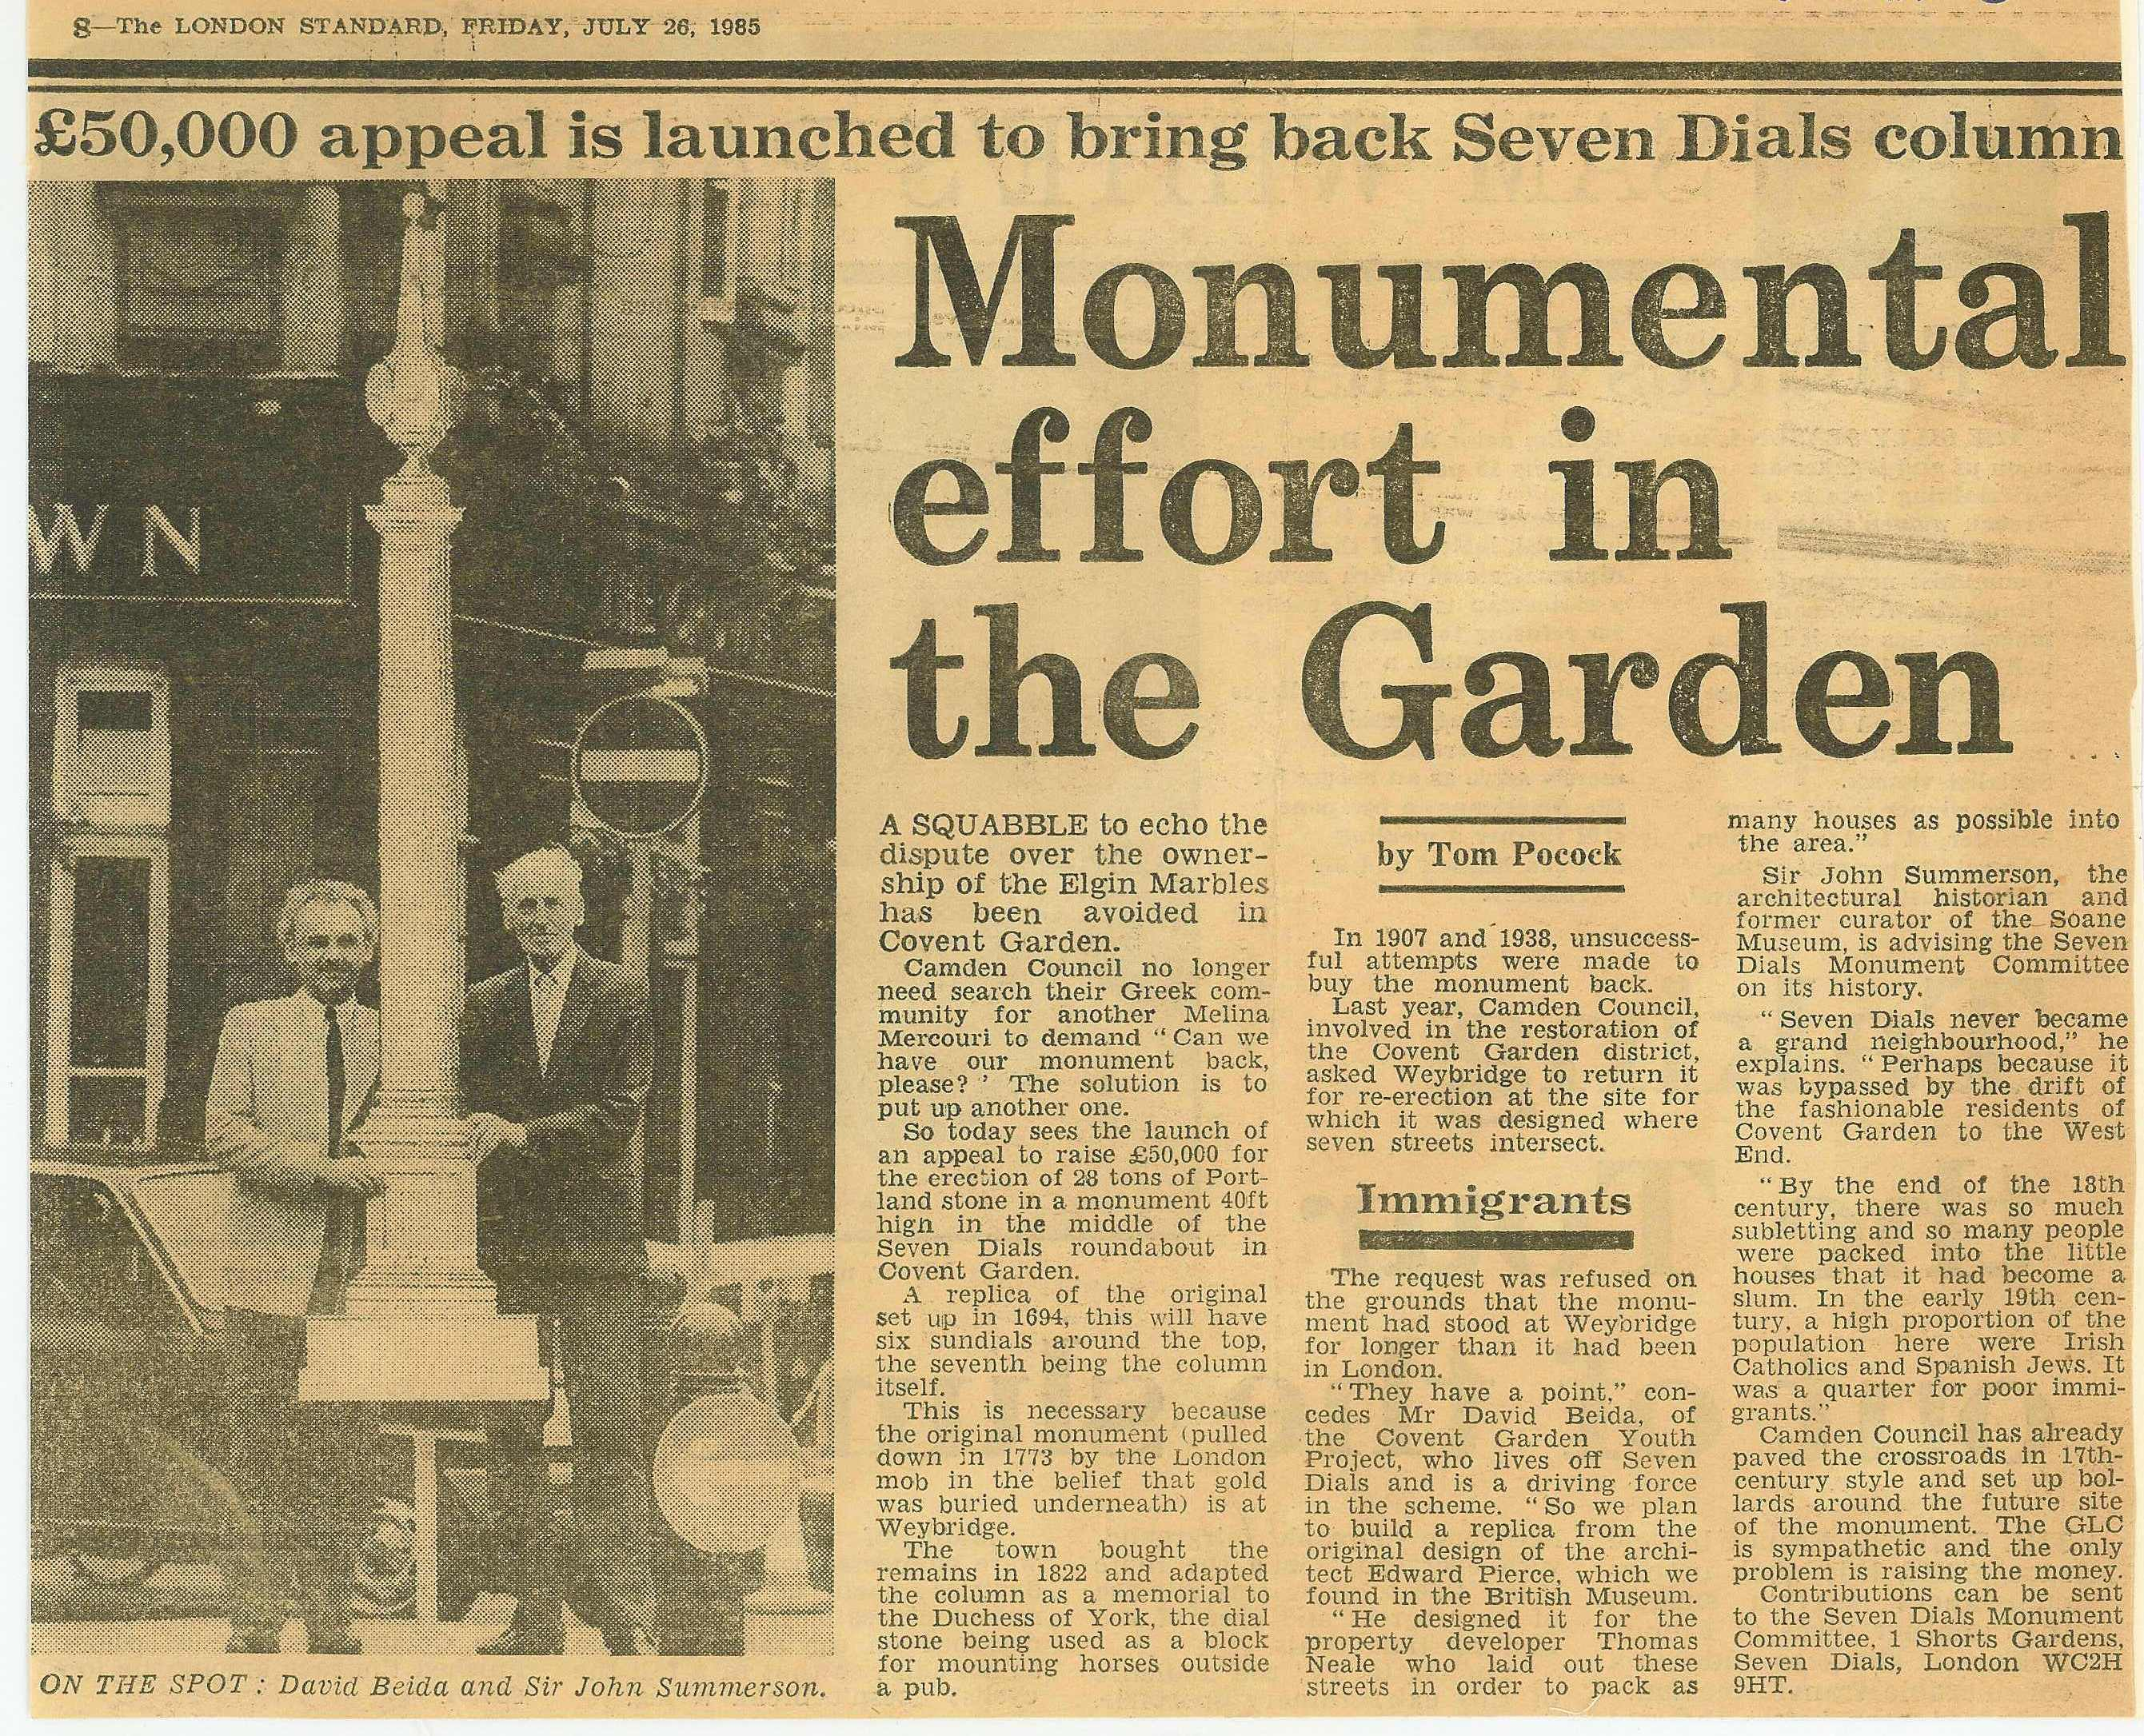 26 July 1985 – The London Standard: Monumental effort in the Garden – £50,000 appeal is launched to bring back Seven Dials column.